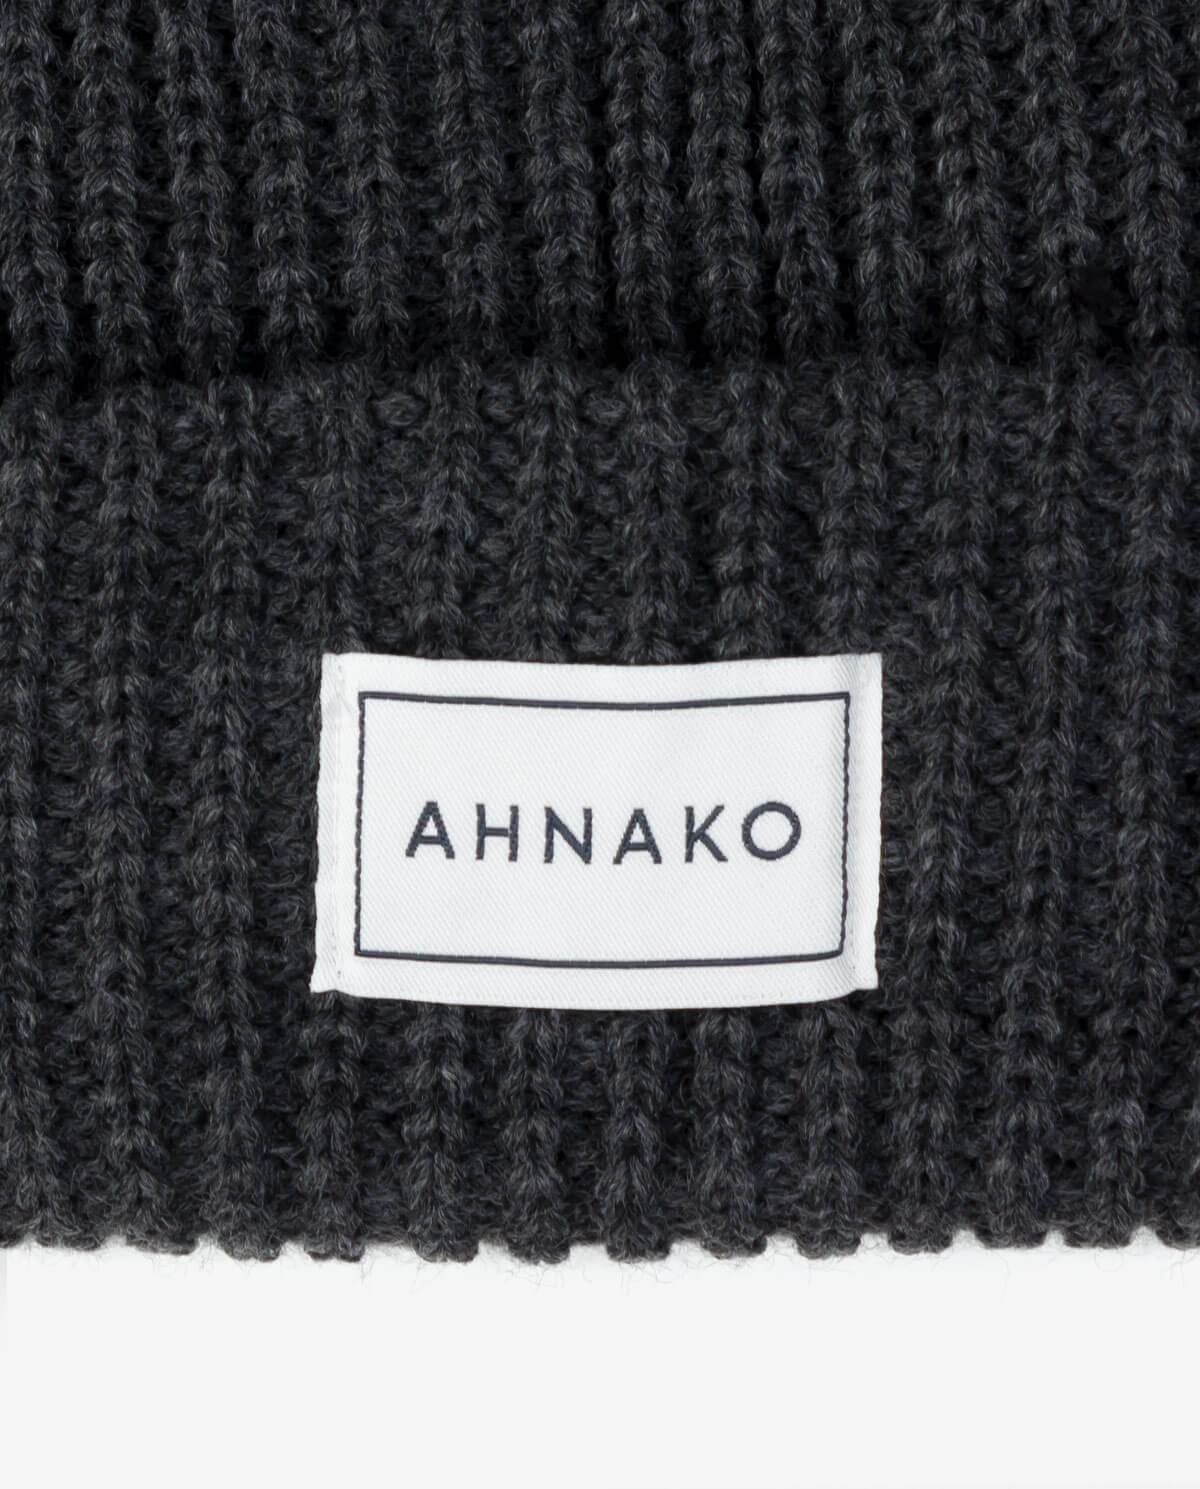 Ahnako Thick Knitted Beanie - Charcoal - Logo Patch